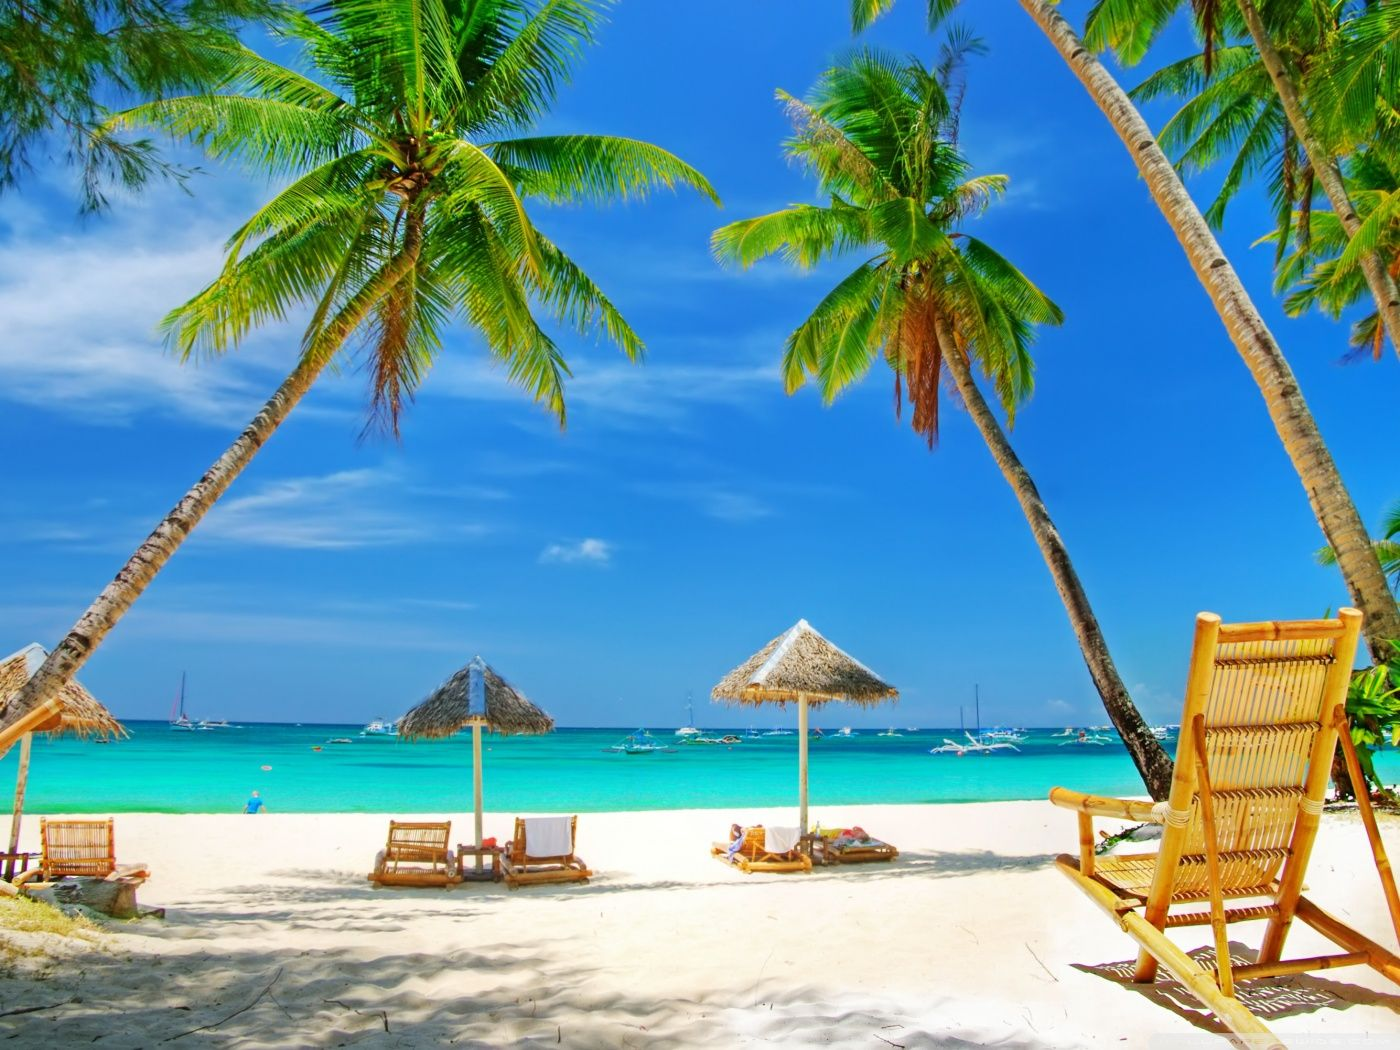 Beach Paradise Wallpaper Hd Background Wallpaper